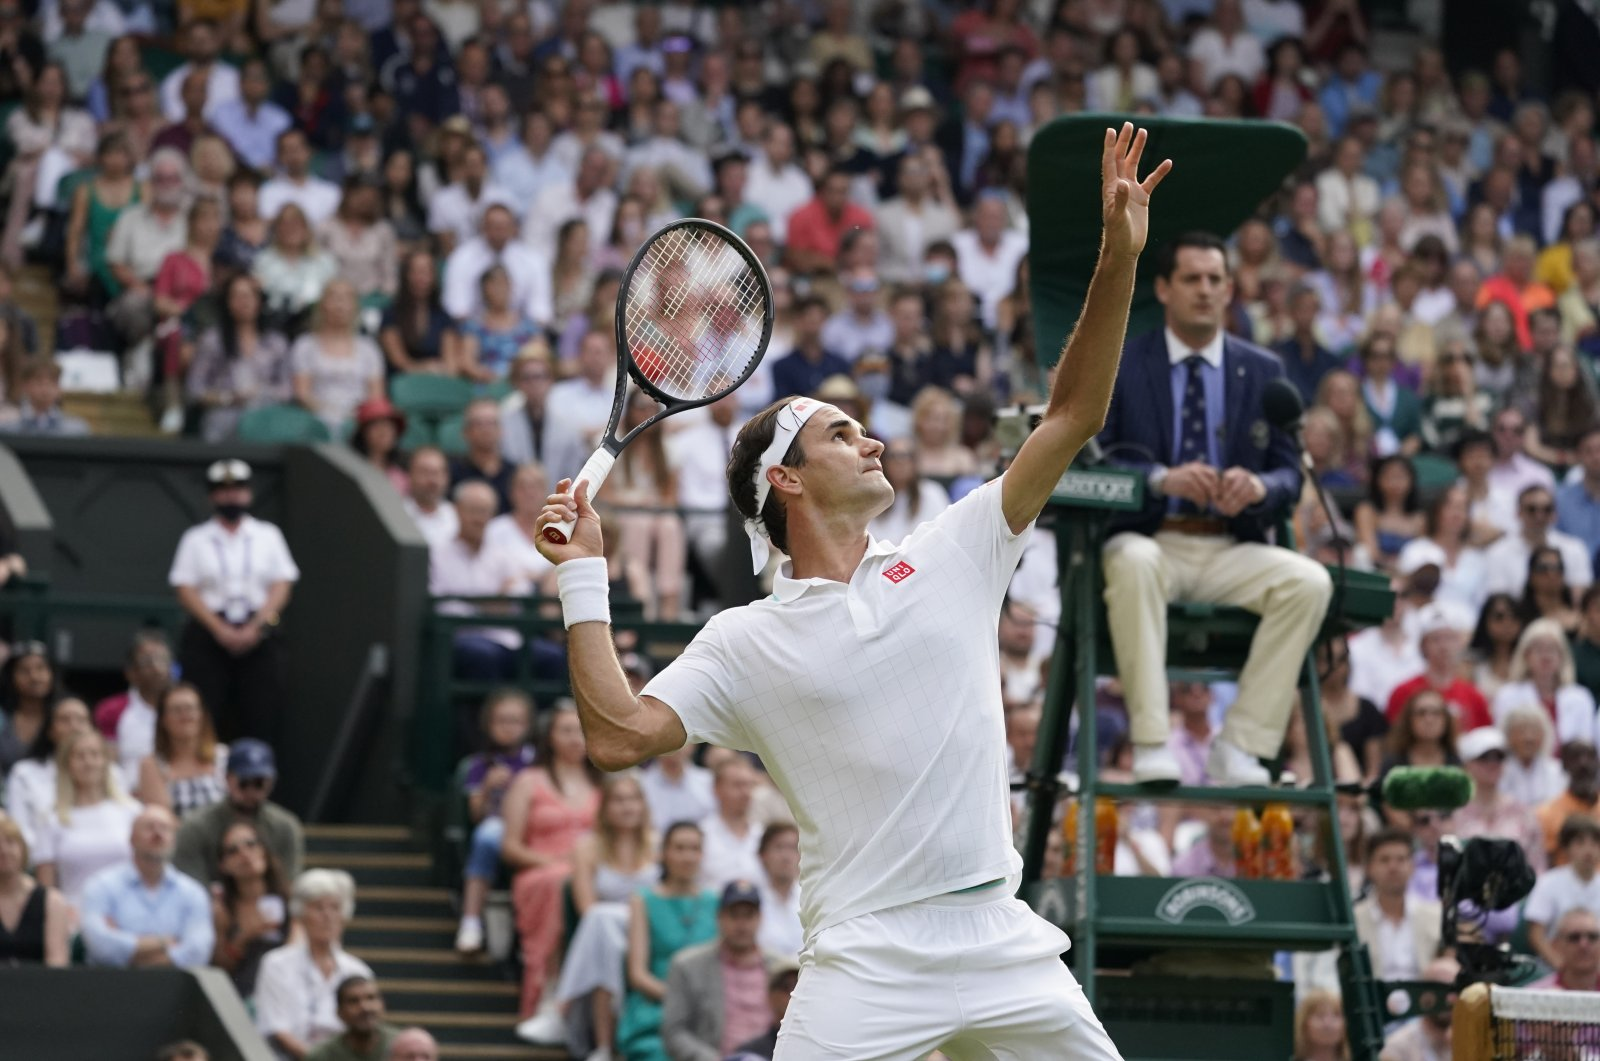 Switzerland's Roger Federer serves to Richard Gasquet of France during the men's singles second round match on day four of the Wimbledon Tennis Championships in London, July 1, 2021. (AP Photo)